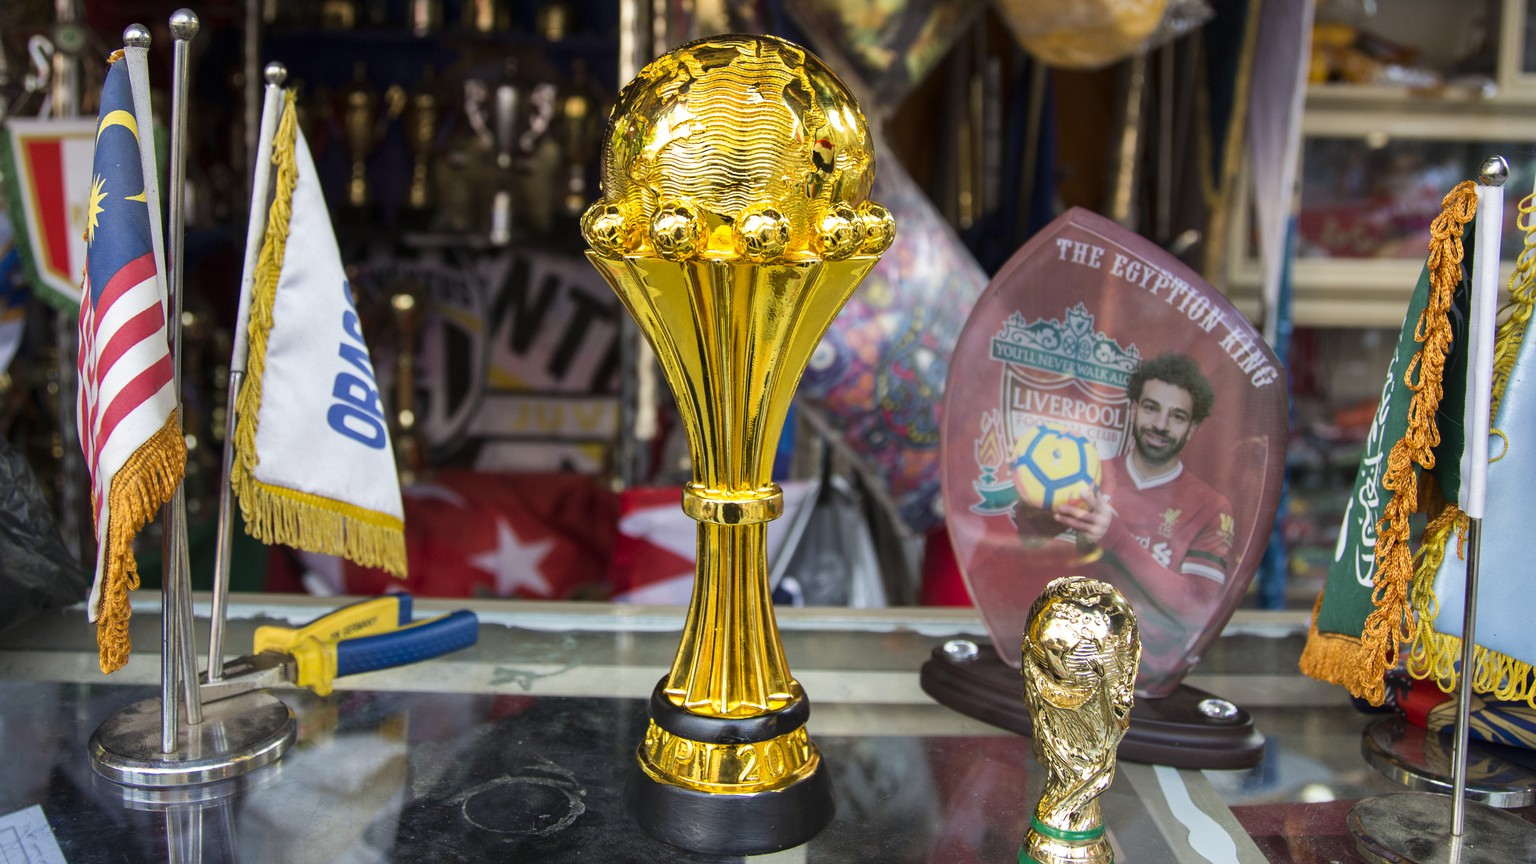 epa07647762 African cup of nation statue displayed with a photo of Mohamed Salah the Egyptian footballer for sale at a shop as preparation for the African cup in downtown Cairo, Egypt,  14 June 2019. Egypt will host the African Cup of Nations, which has been expanded to 24 teams, from 21 June to 19 July.  EPA/Mohamed Hossam